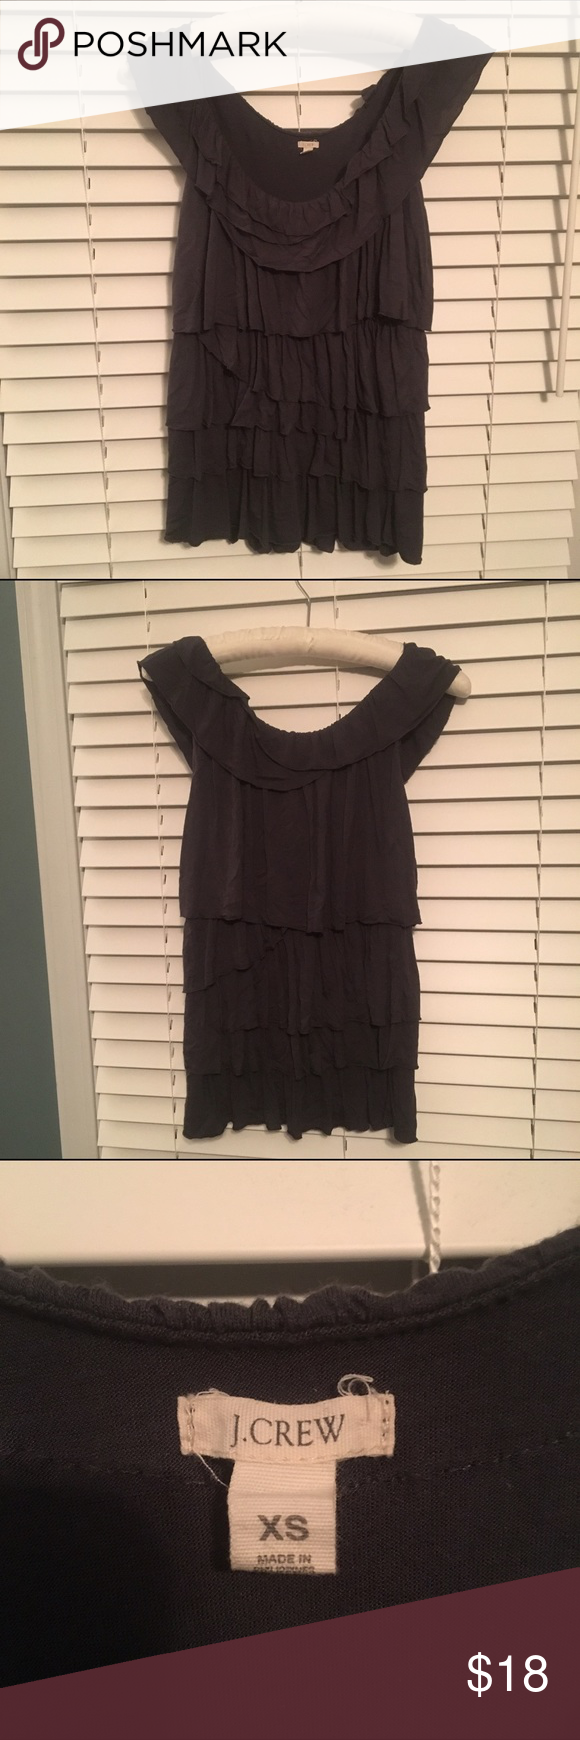 J CREW: Ruffled Tank Top Charcoal-gray tank top with cute ruffle detail throughout. Stretchy, super comfortable material! Also available in Cream. J. Crew Tops Blouses